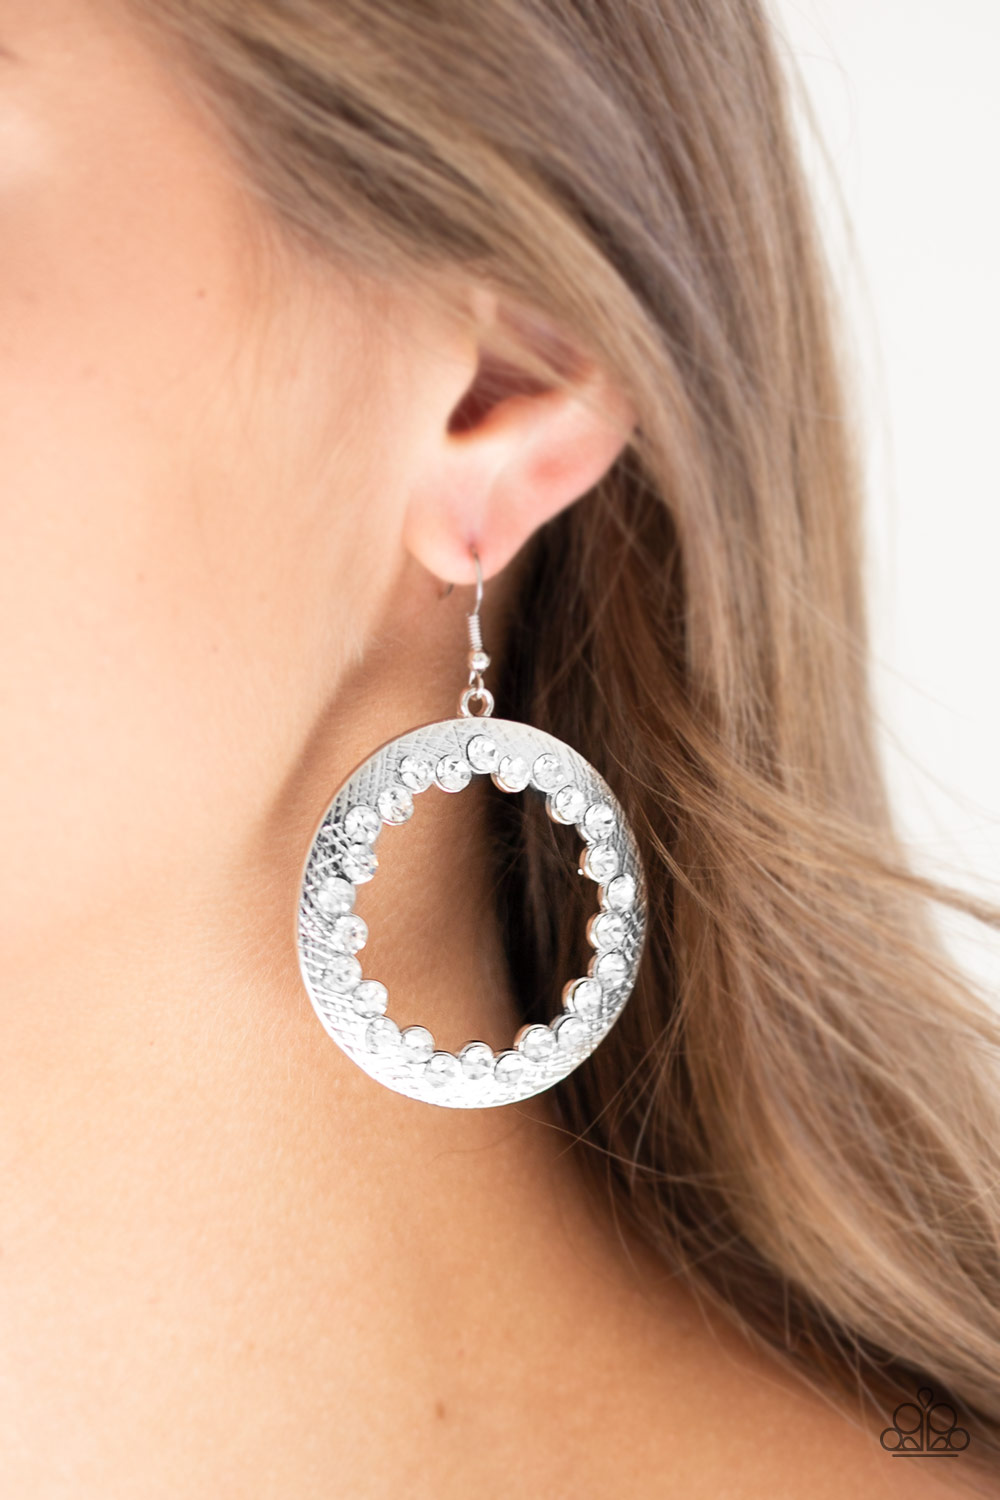 Silver and Rhinestone Earrings by Paparazzi $5.00 www.my-bling.com